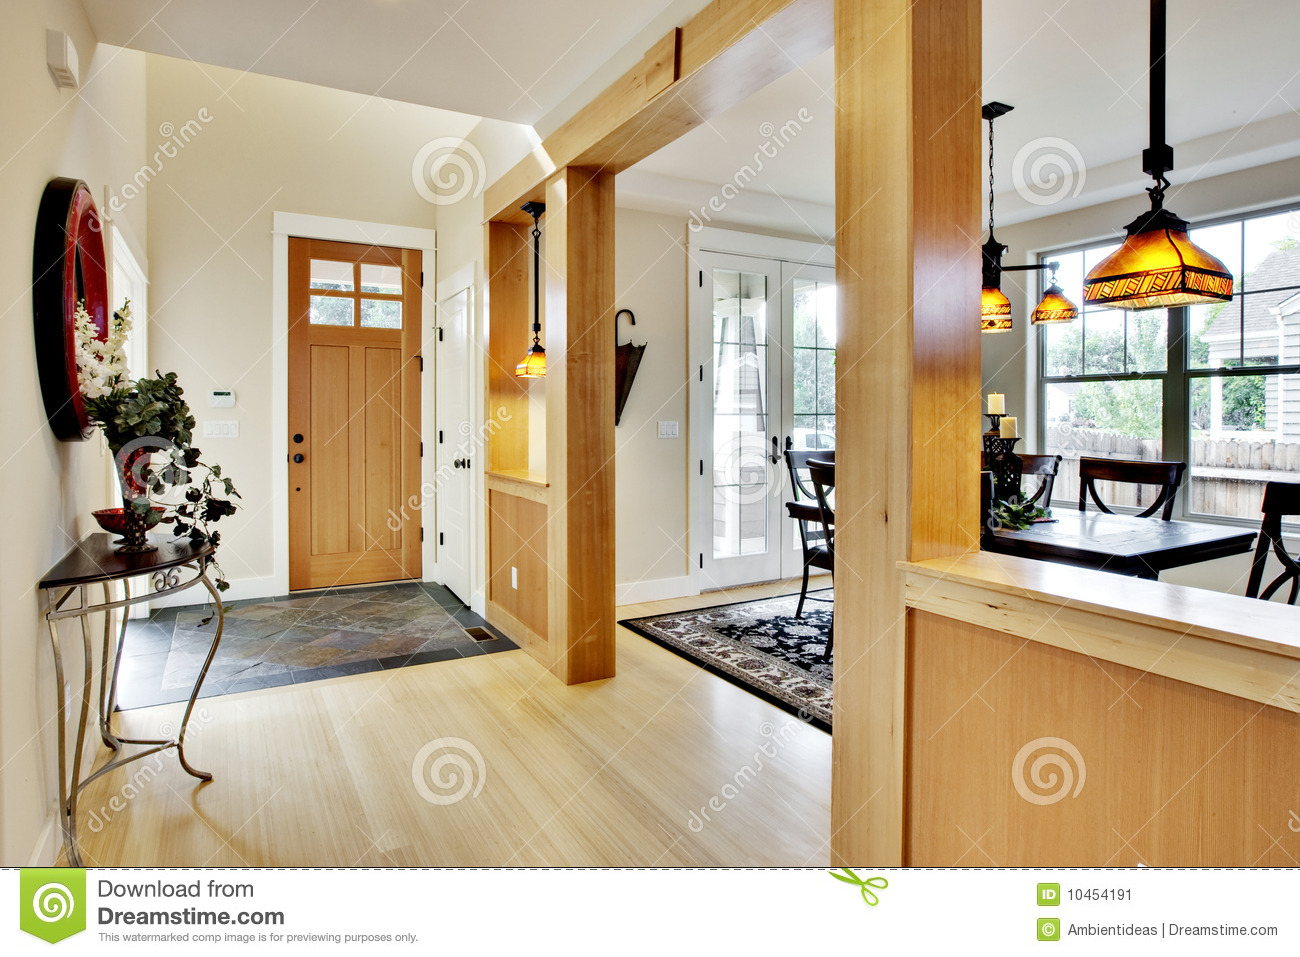 Home entrance hallway stock image image of residential for Bar interieur maison